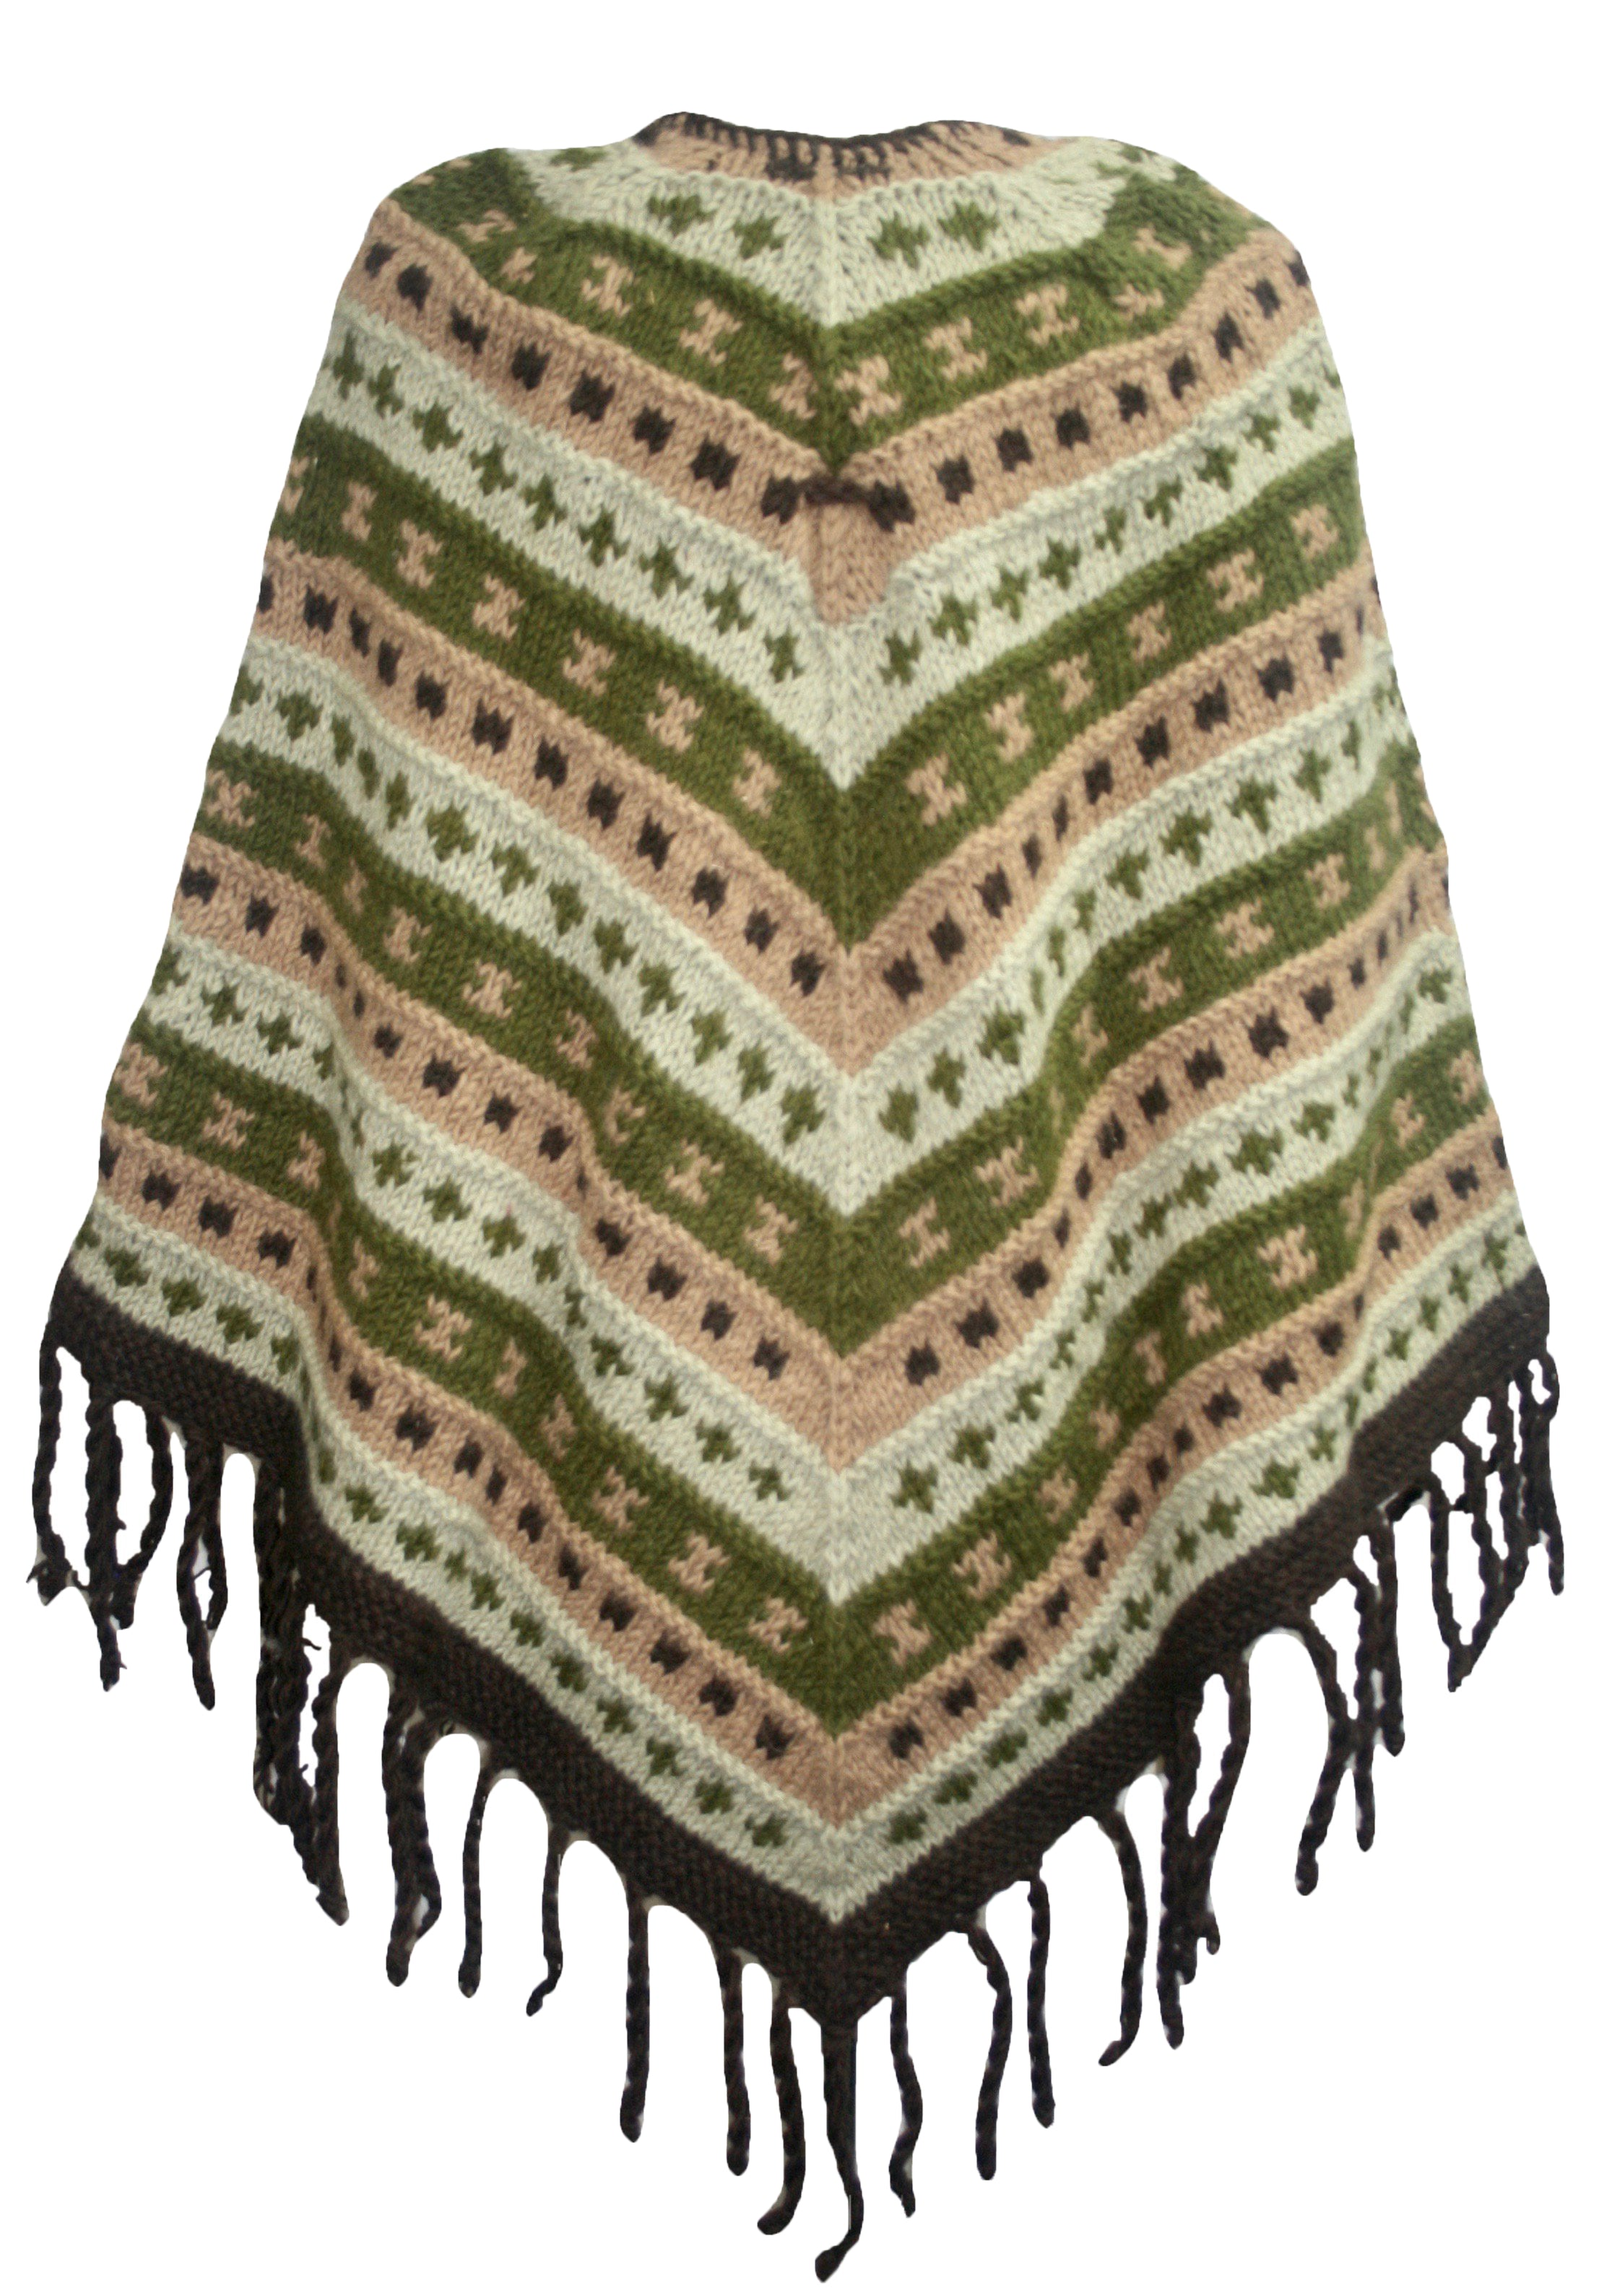 PN 200 Himalayan Thick Sheep Wool Hand Knitted Poncho - Agan Traders, PN 200 14